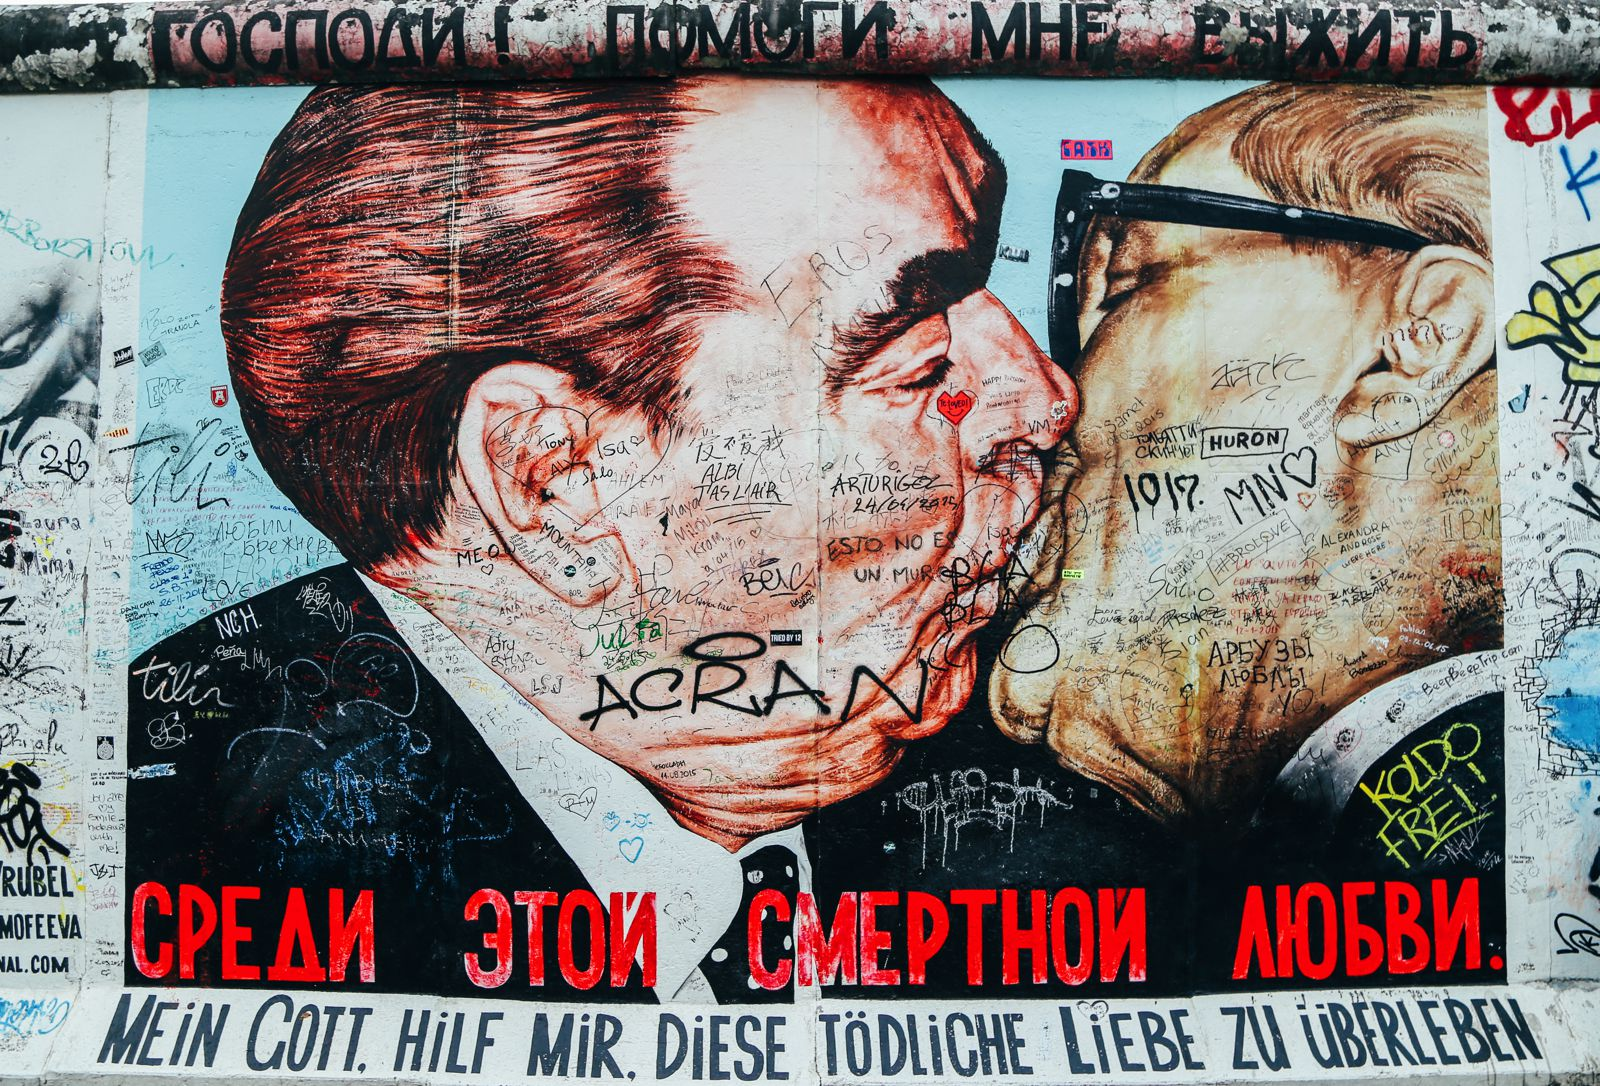 East Side Gallery, Berlin, Germany (12)